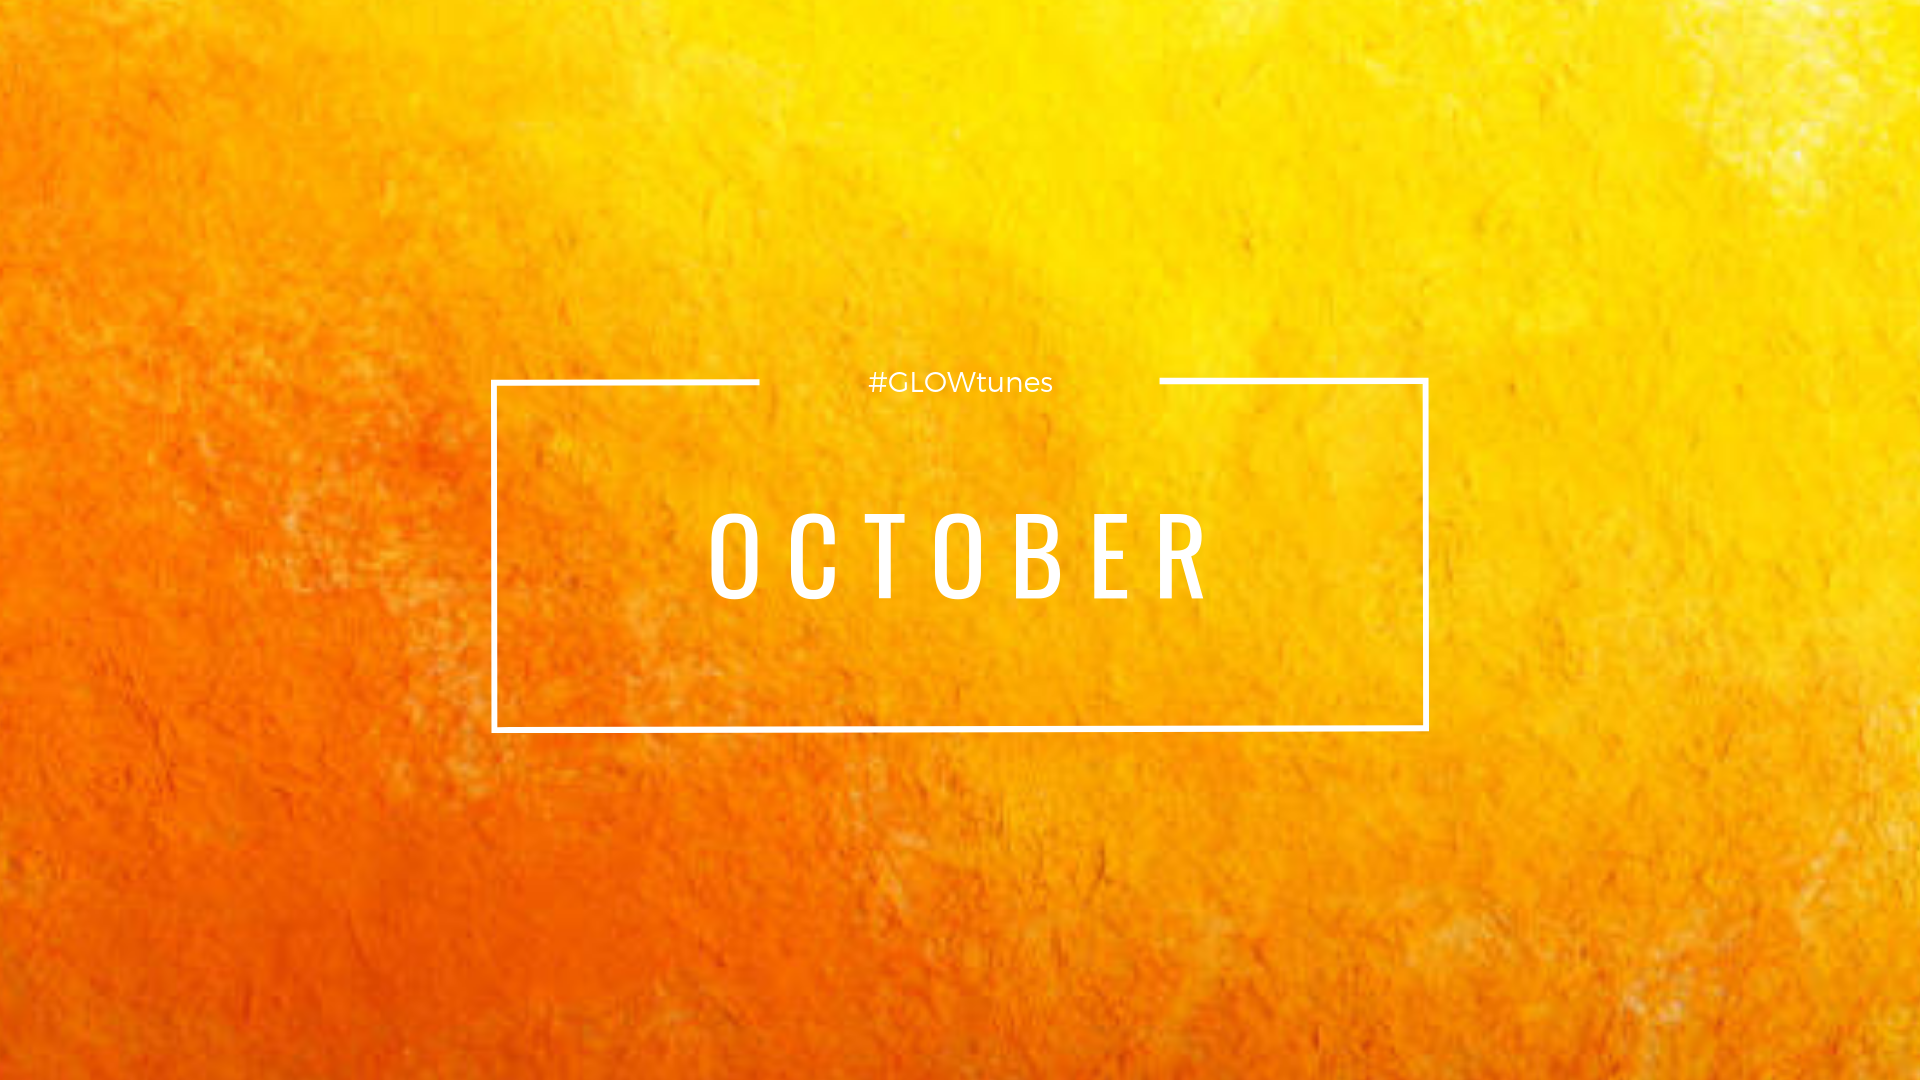 Here is the October 2019 #GLOWtunes playlist, for your listening pleasure. Straight from your glow girls. As music-obsessed chicks, we're excited to share with you a mix of tunes that we love. Some rap, chill, hip hop, electronic, and just good beats.  ENJOY xx  LISTEN HERE ::  https://open.spotify.com/user/howyouglow/playlist/7gsUmaA6osbhof2iAGtEuN?si=OLBi5T7pQc6aVX6hzYdMJg